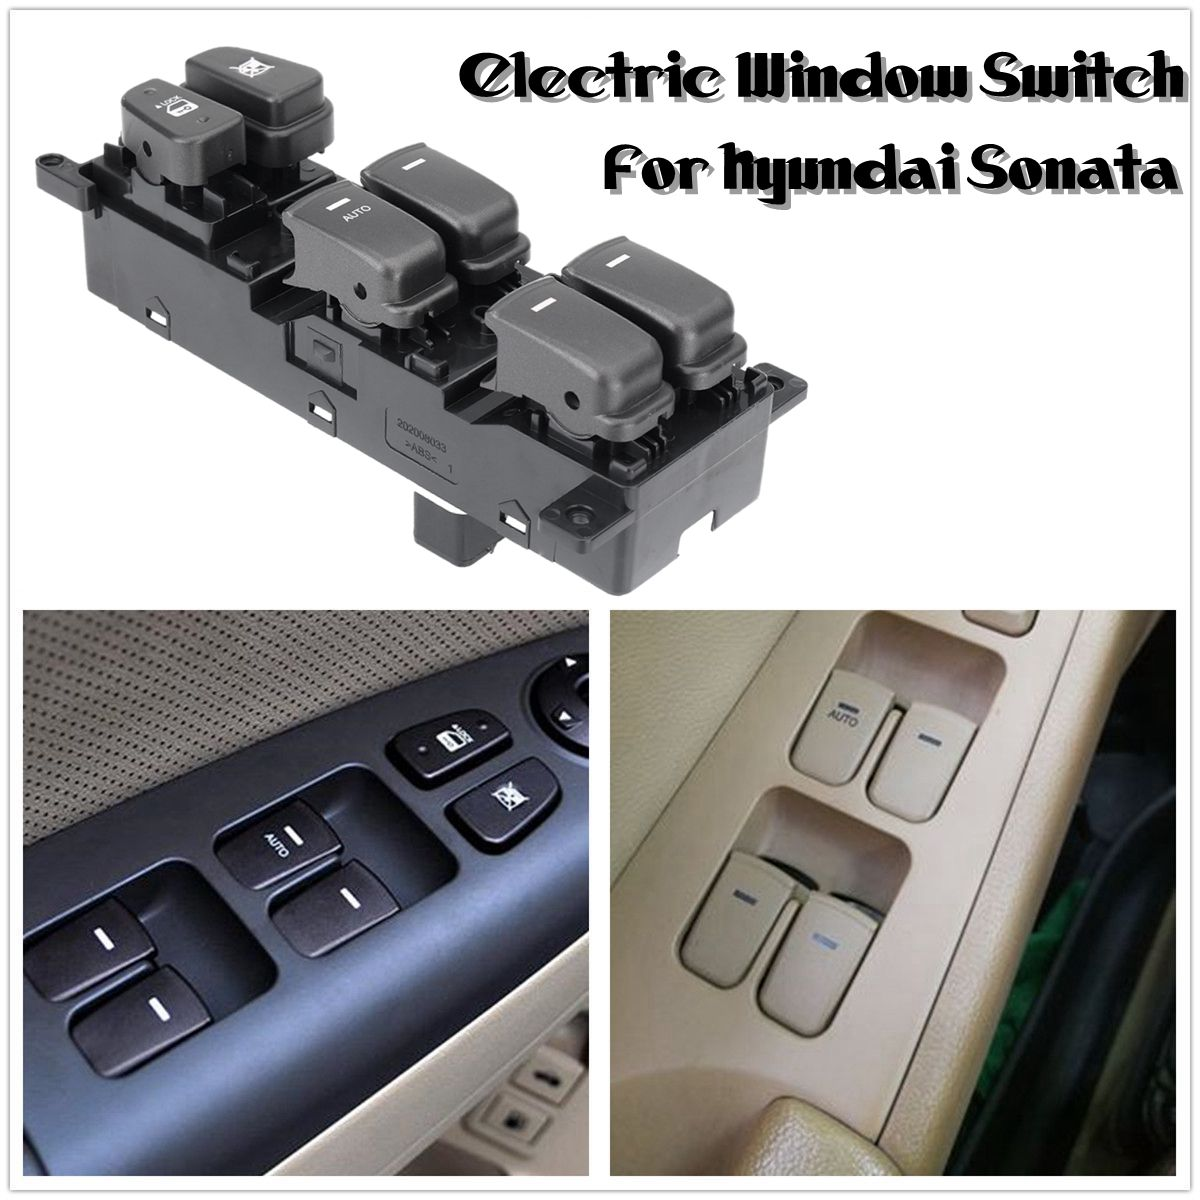 1Pc Front Electric Window Switch Fit For Hyundai Sonata 2007-2010 93570-3K600